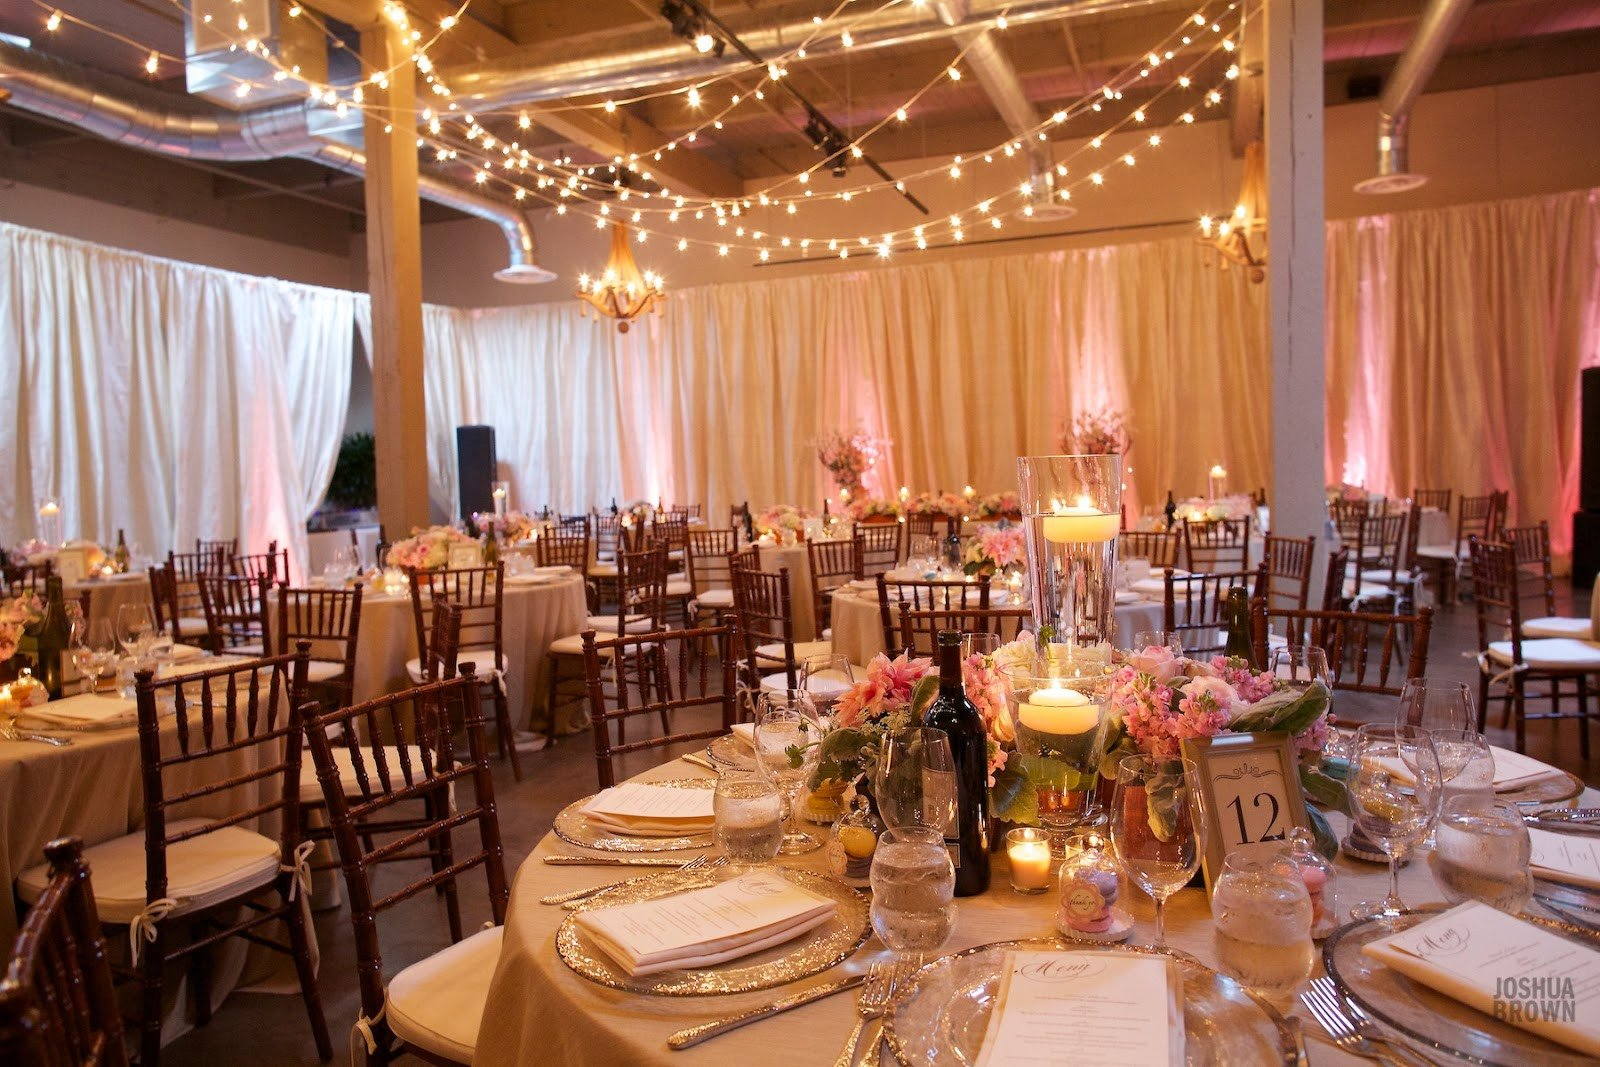 Decor Ideas for Wedding Reception Awesome Flora Nova Design the Blog A Romantic Vintage Wedding at the Foundry